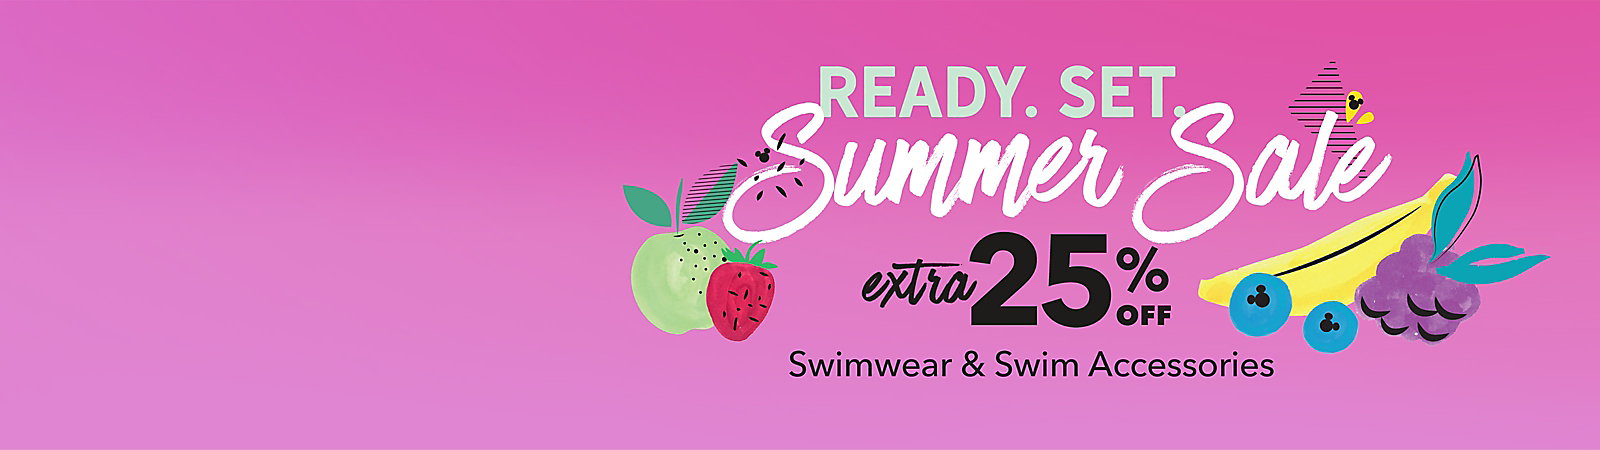 Extra 25% Off Swimwear & Swim Accessories with Code: SUMMER25